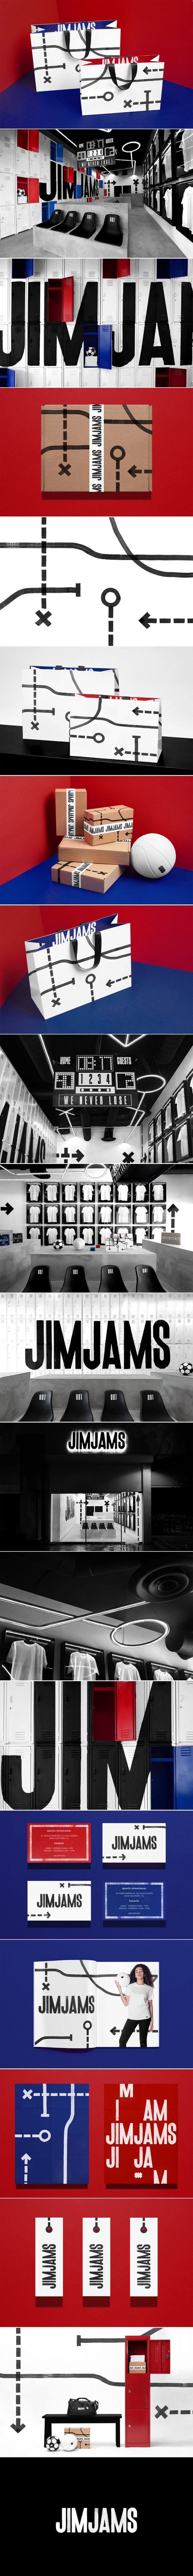 Get Your Head In The Game With This Playbook-Inspired Branding For JimJams — The Dieline | Packaging & Branding Design & Innovation News